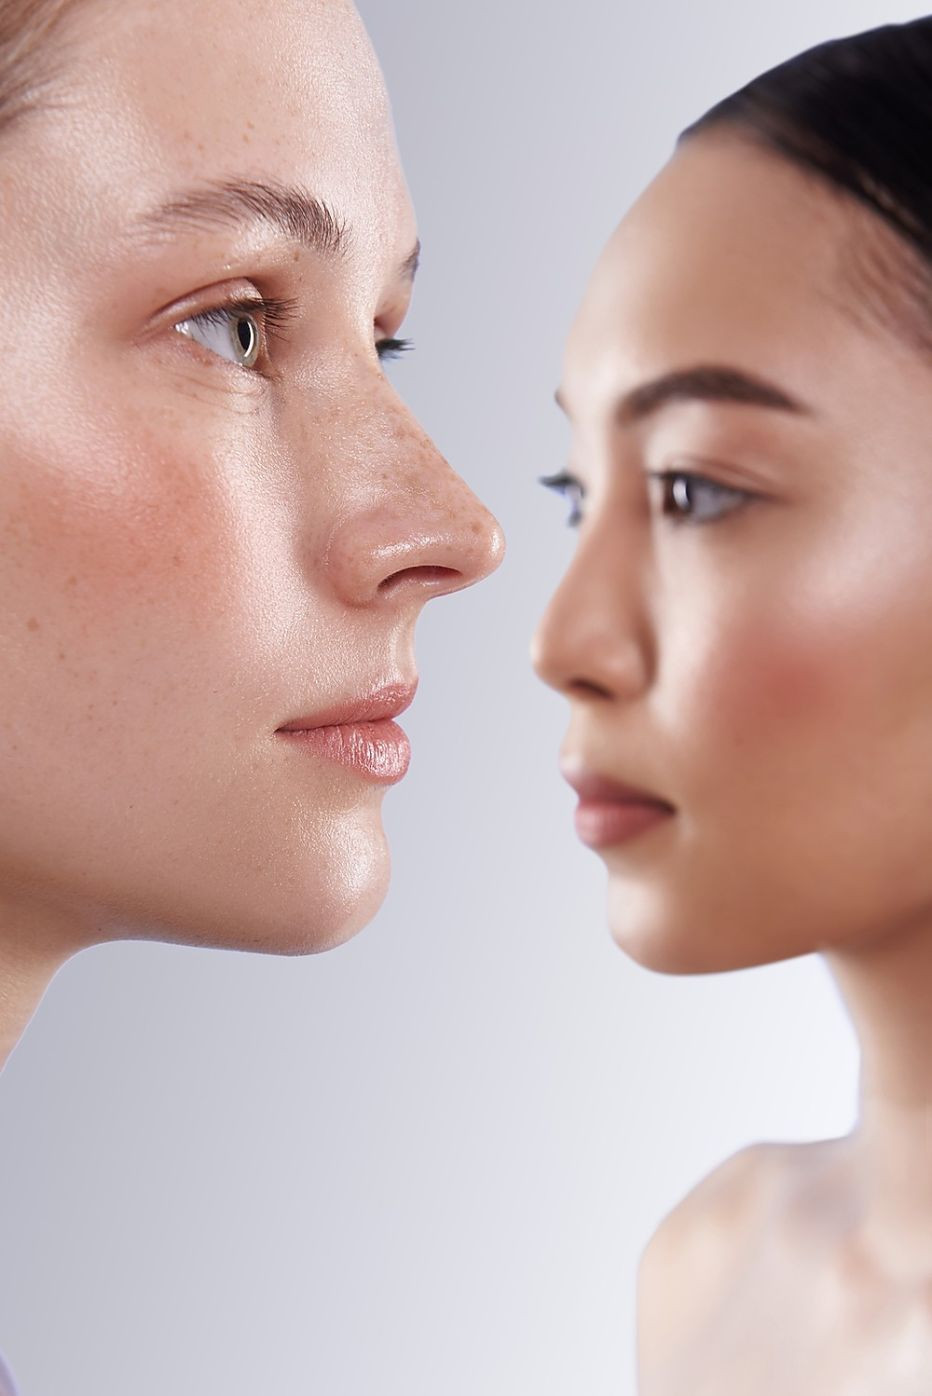 Two female faces looking into different directions